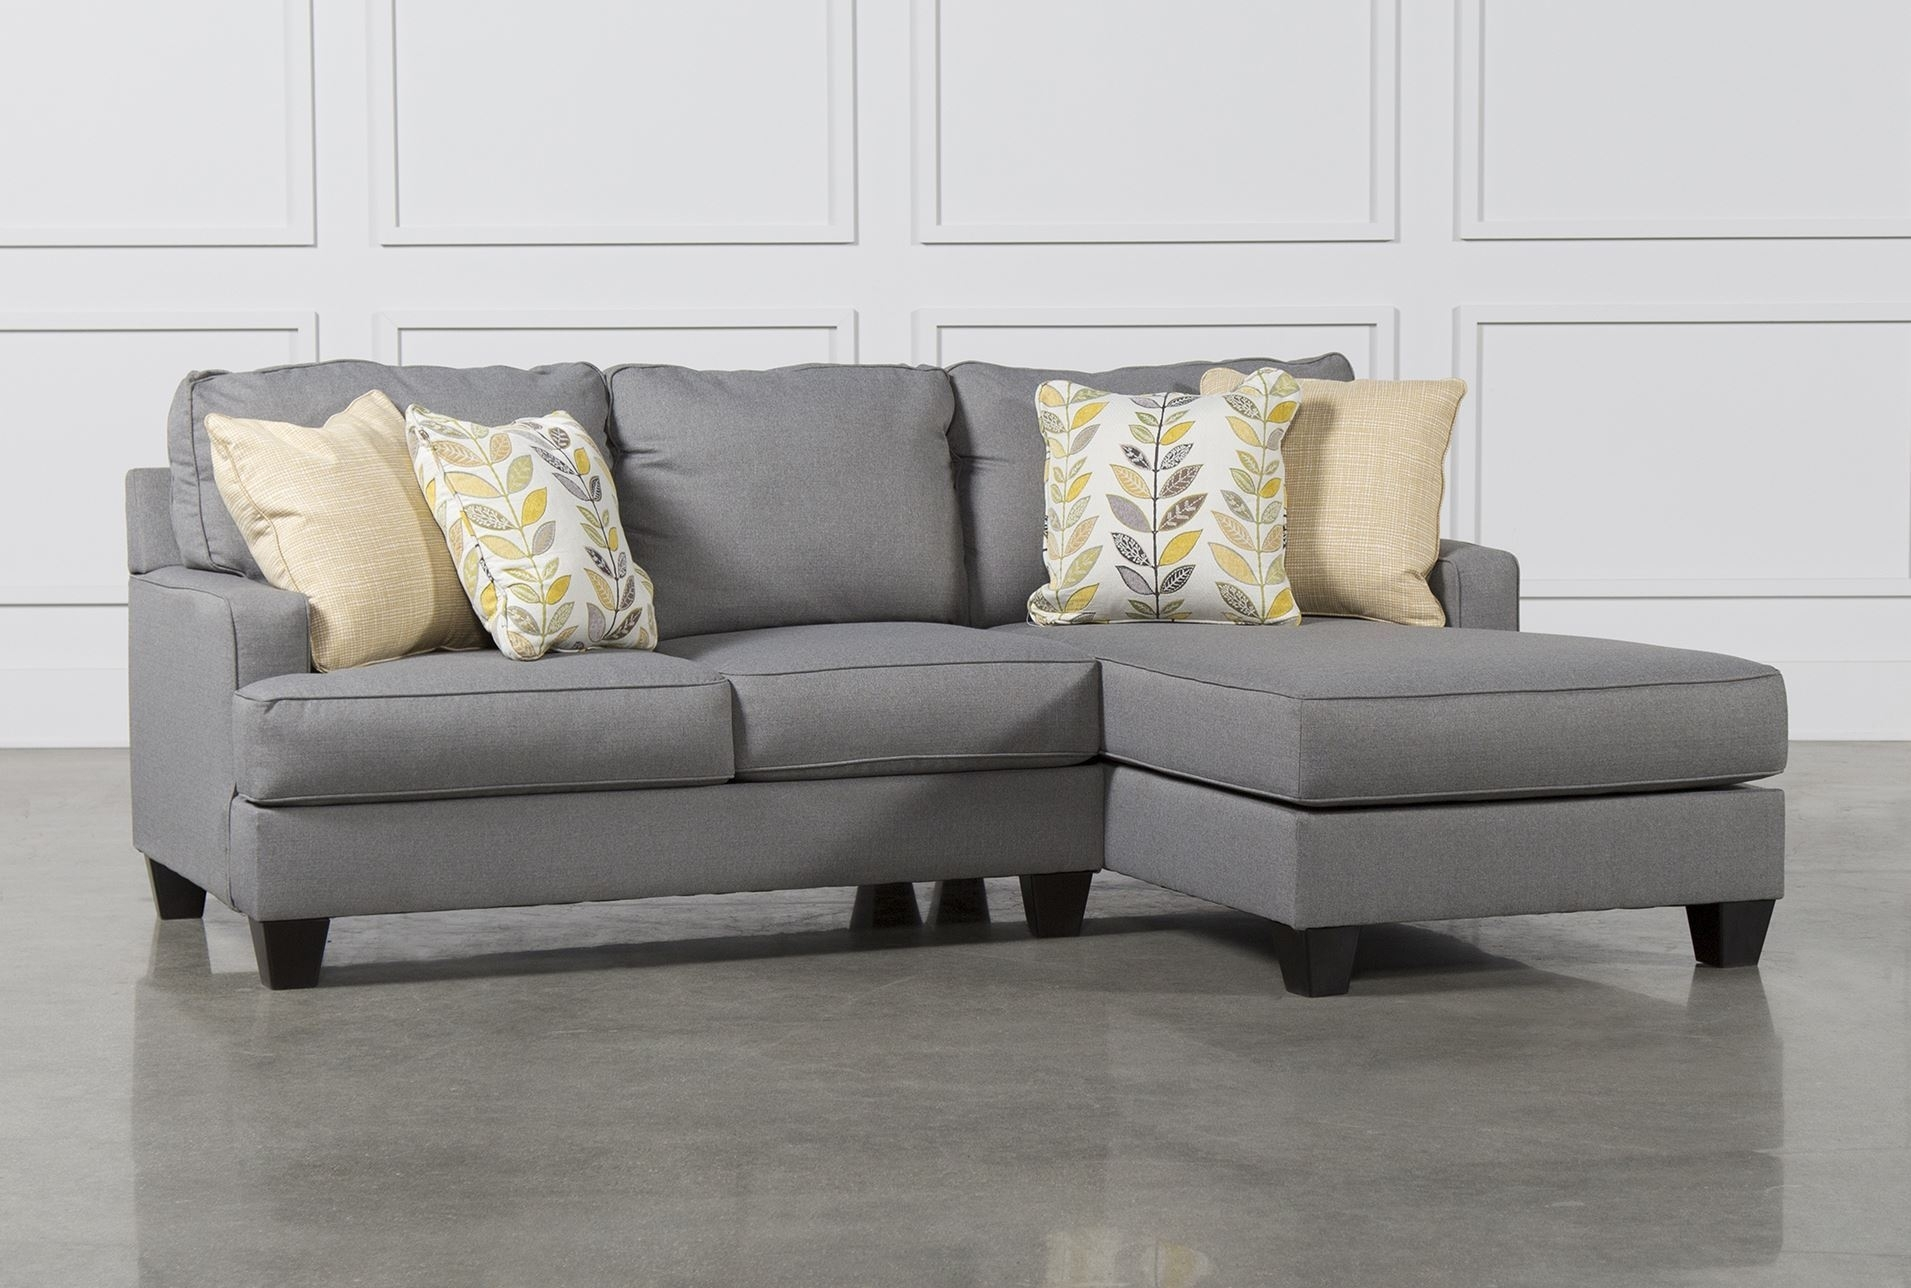 Chamberly 2 Piece Sectional W/raf Chaise – Signature | Mi Casa Inside Murfreesboro Tn Sectional Sofas (View 5 of 10)